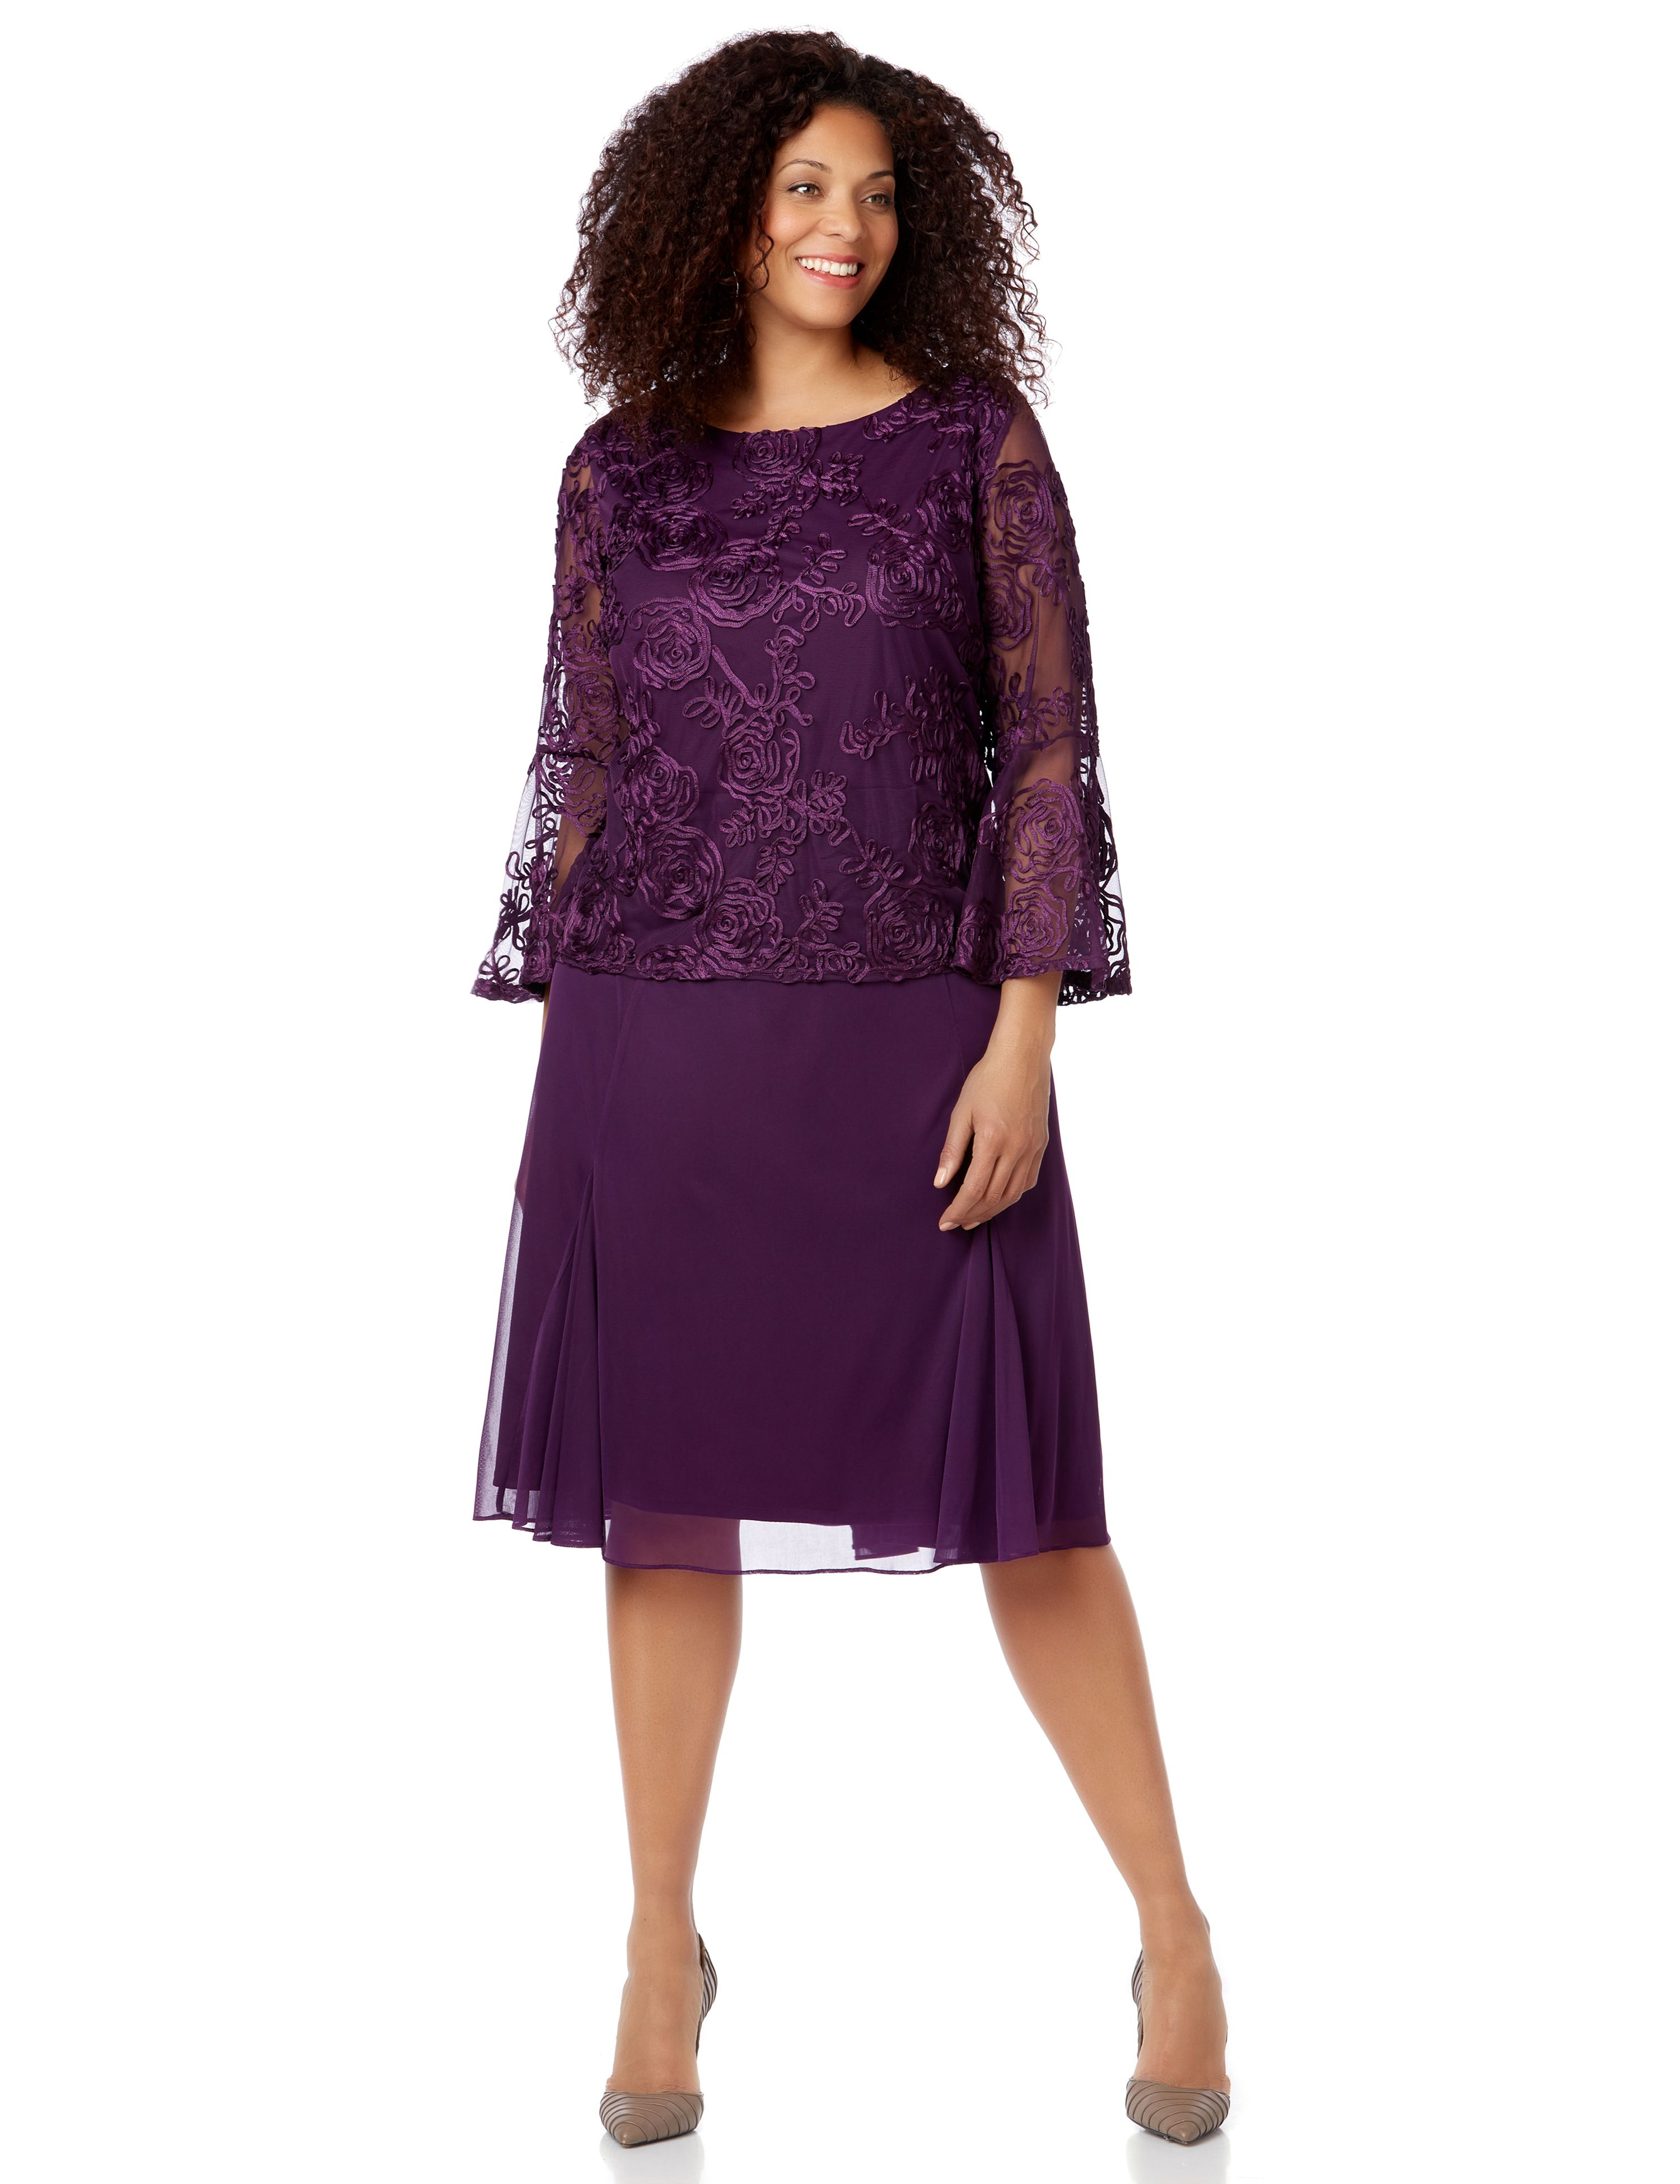 Plum Promenade Dress 1090986 Dress with Overlay and Bell MP-300096158